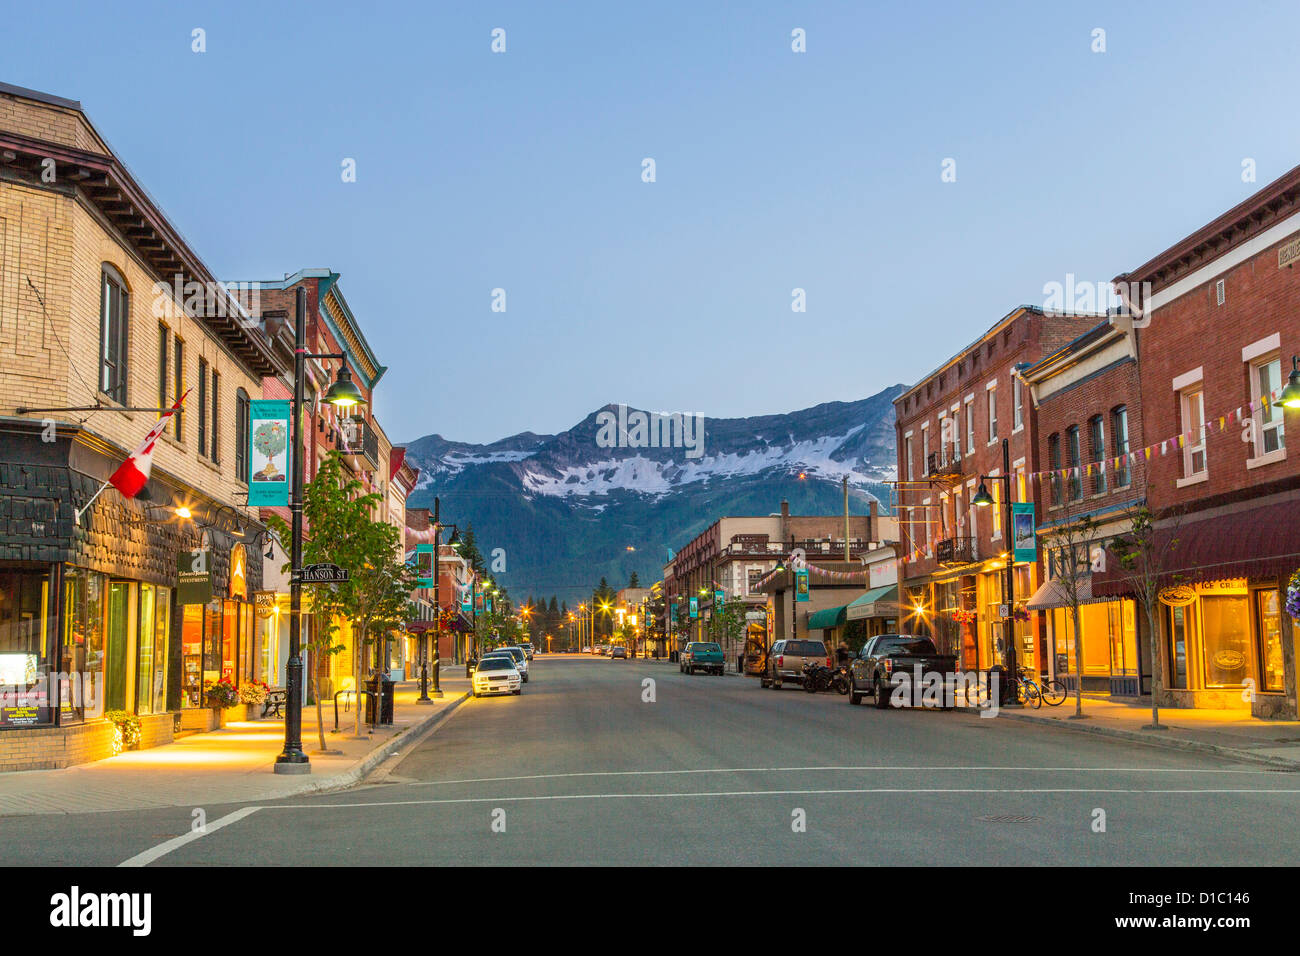 Historic 2nd street in downtown Fernie, British Columbia, Canada - Stock Image